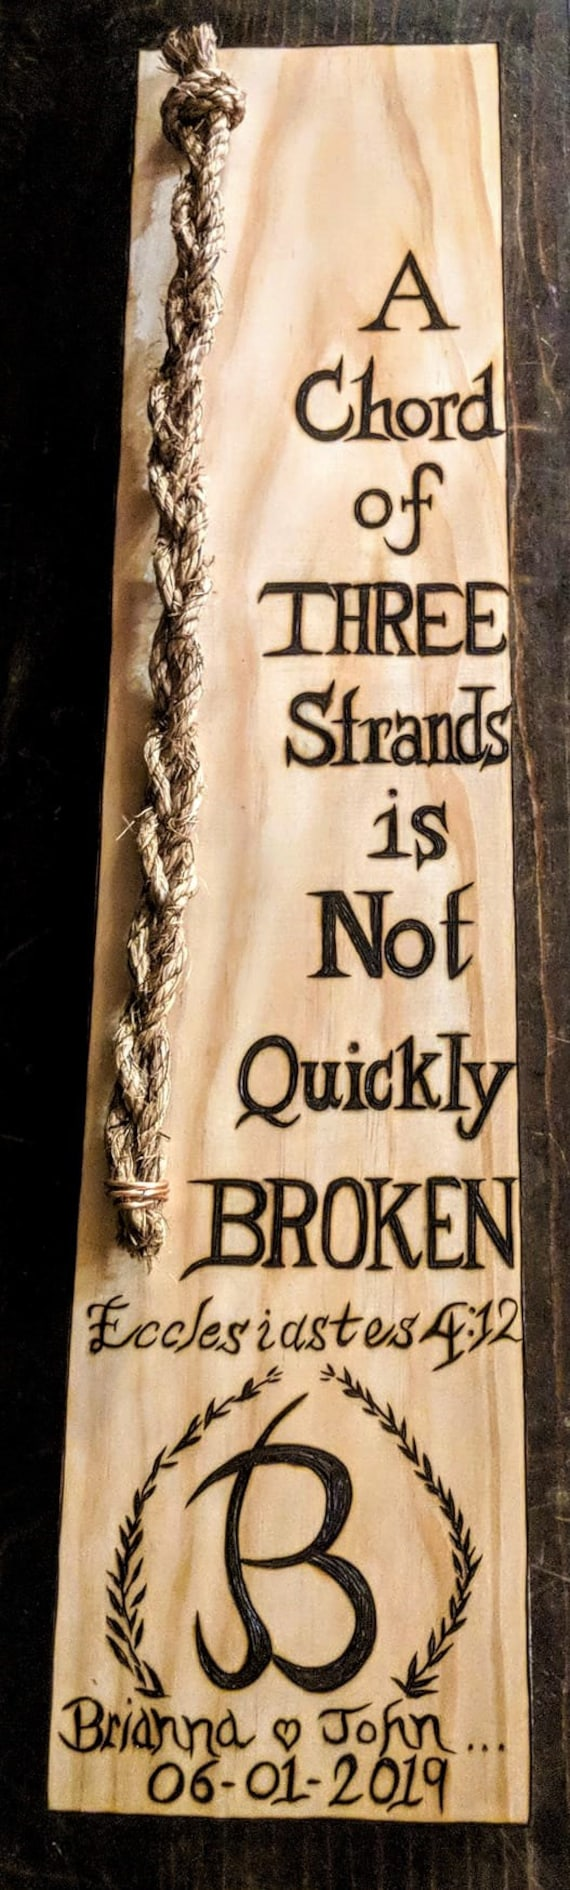 anniversary gift, Unity, Three strand braid, Ecclesiastes 4:12, Wife gift, Husband gift, Wood burned, Gods Knot, A chord of Three stands